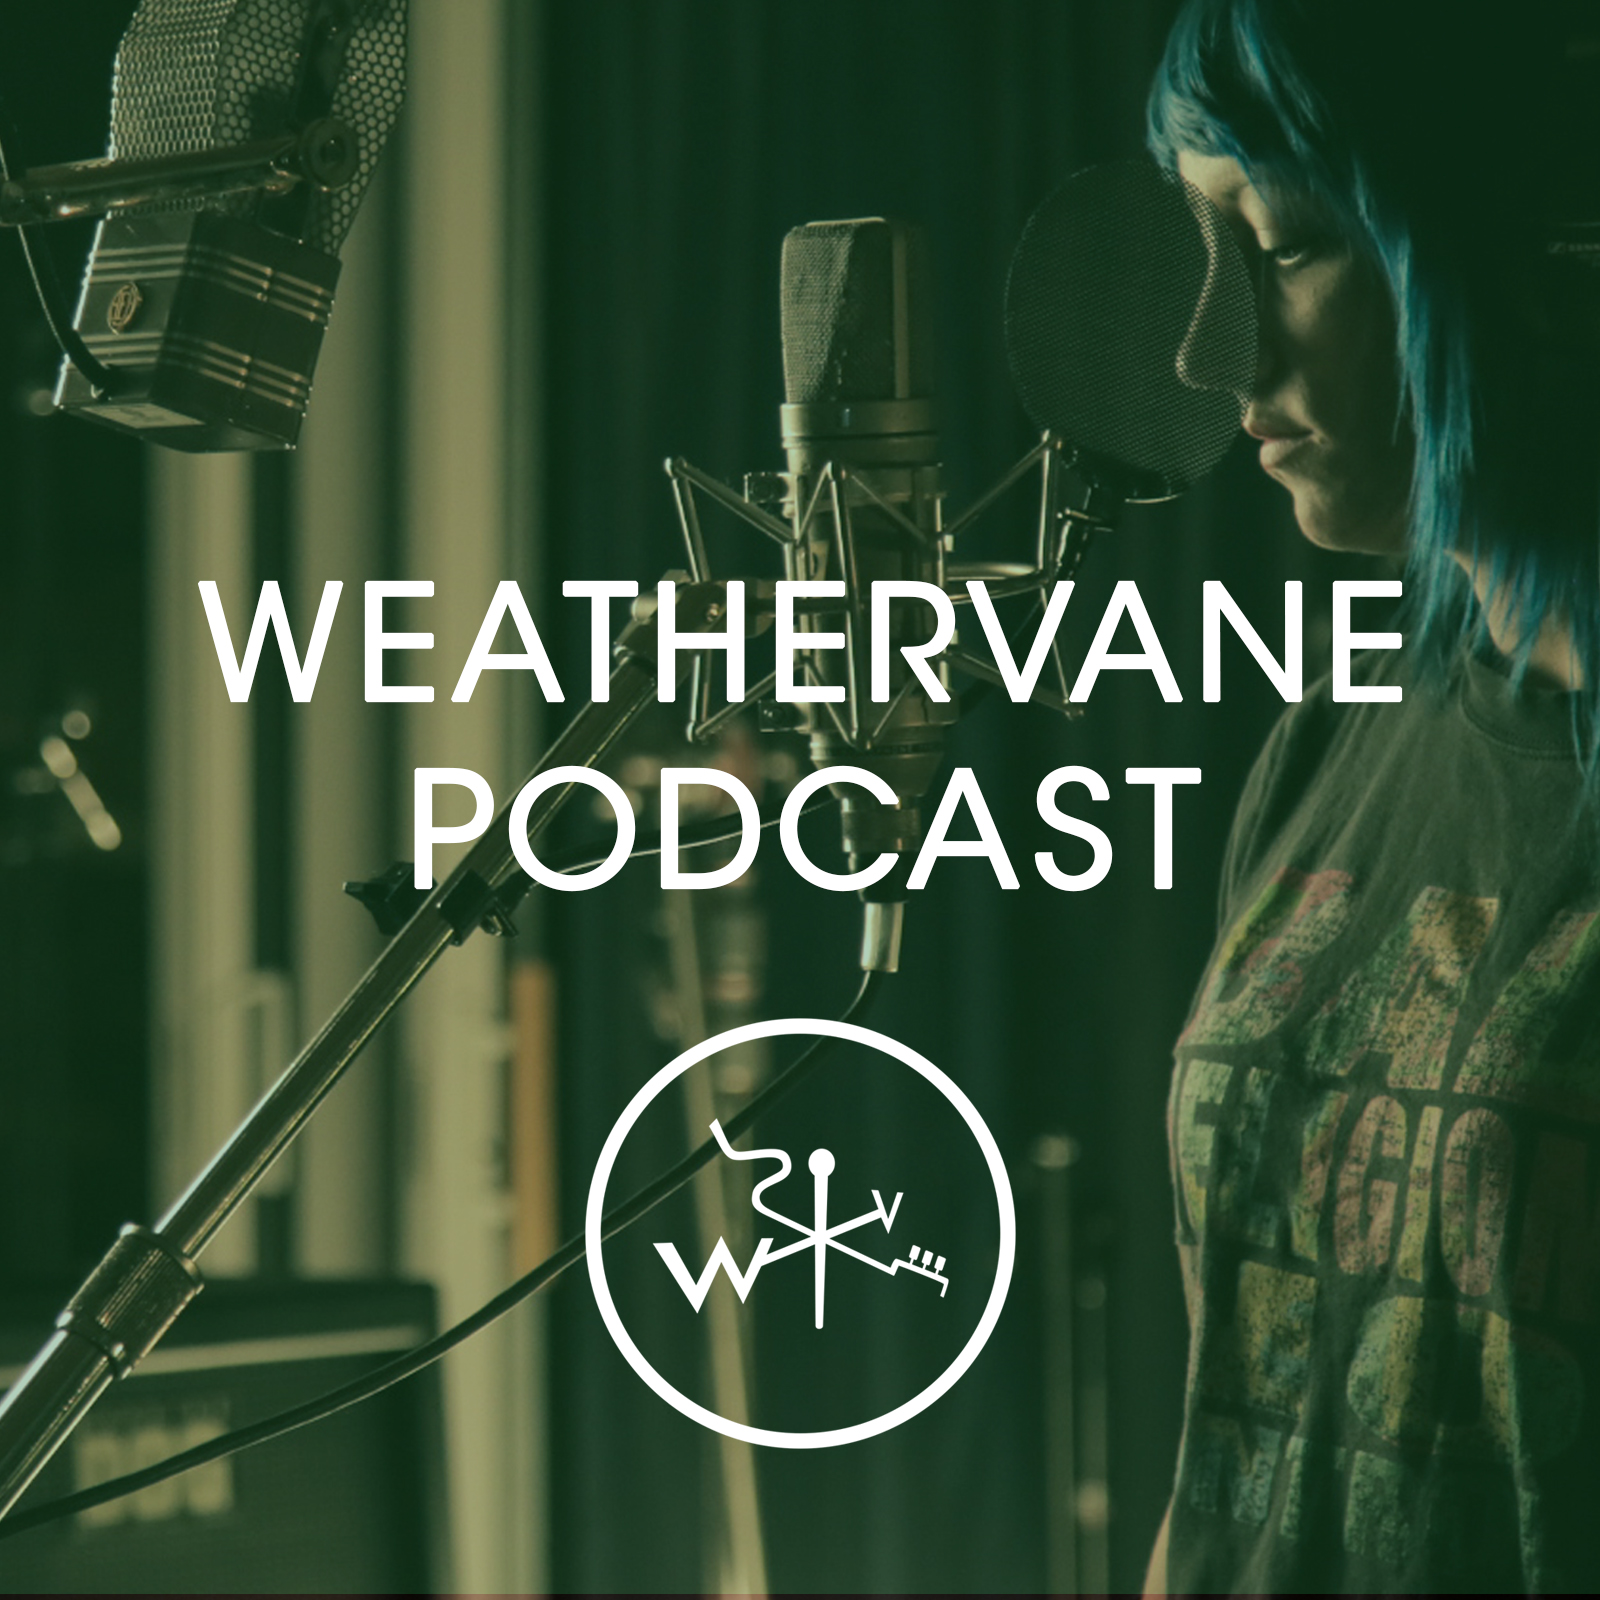 Weathervane Podcast